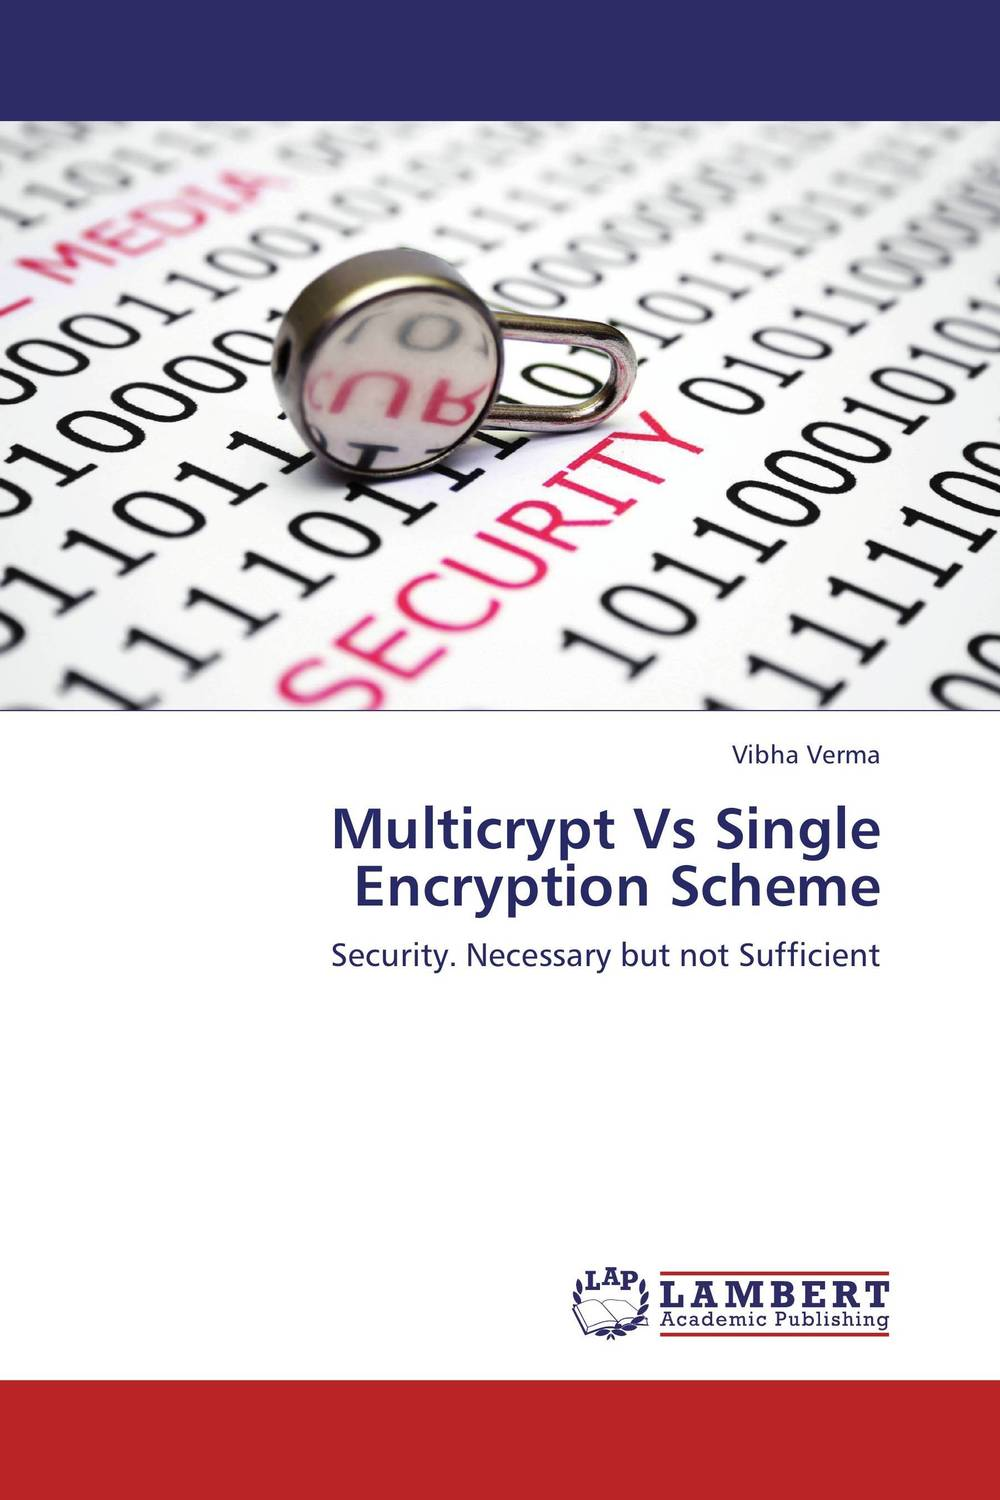 Multicrypt Vs Single Encryption Scheme